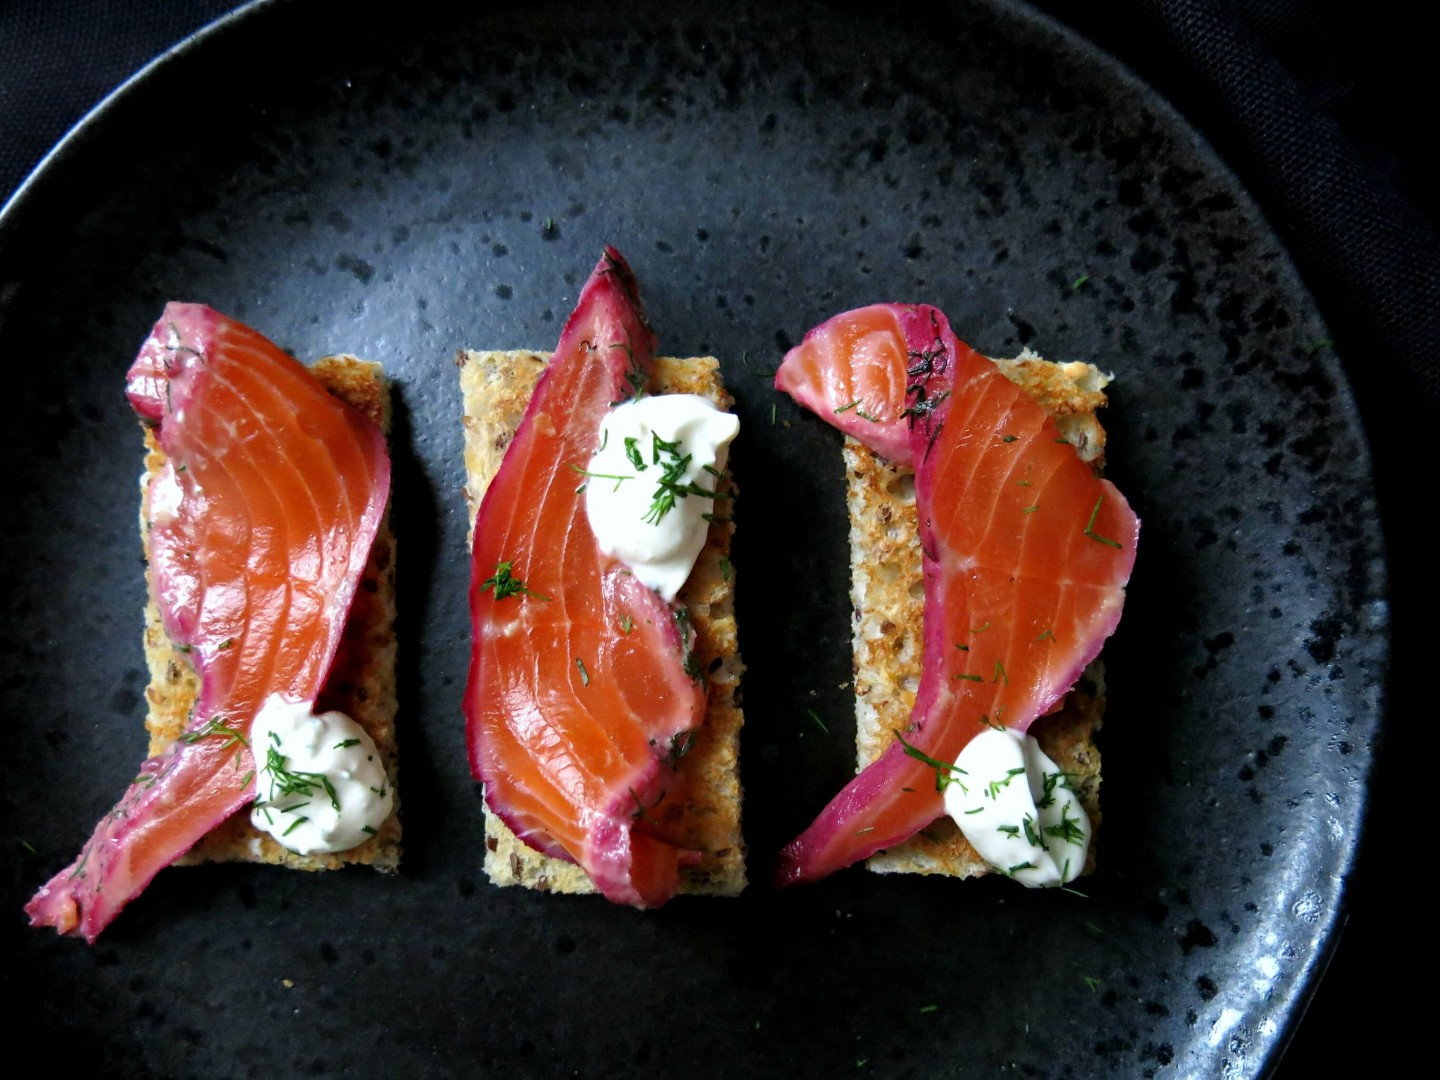 A simple and easy to follow recipe for Gin and blackberry cured salmon with horseradish crème fraîche.